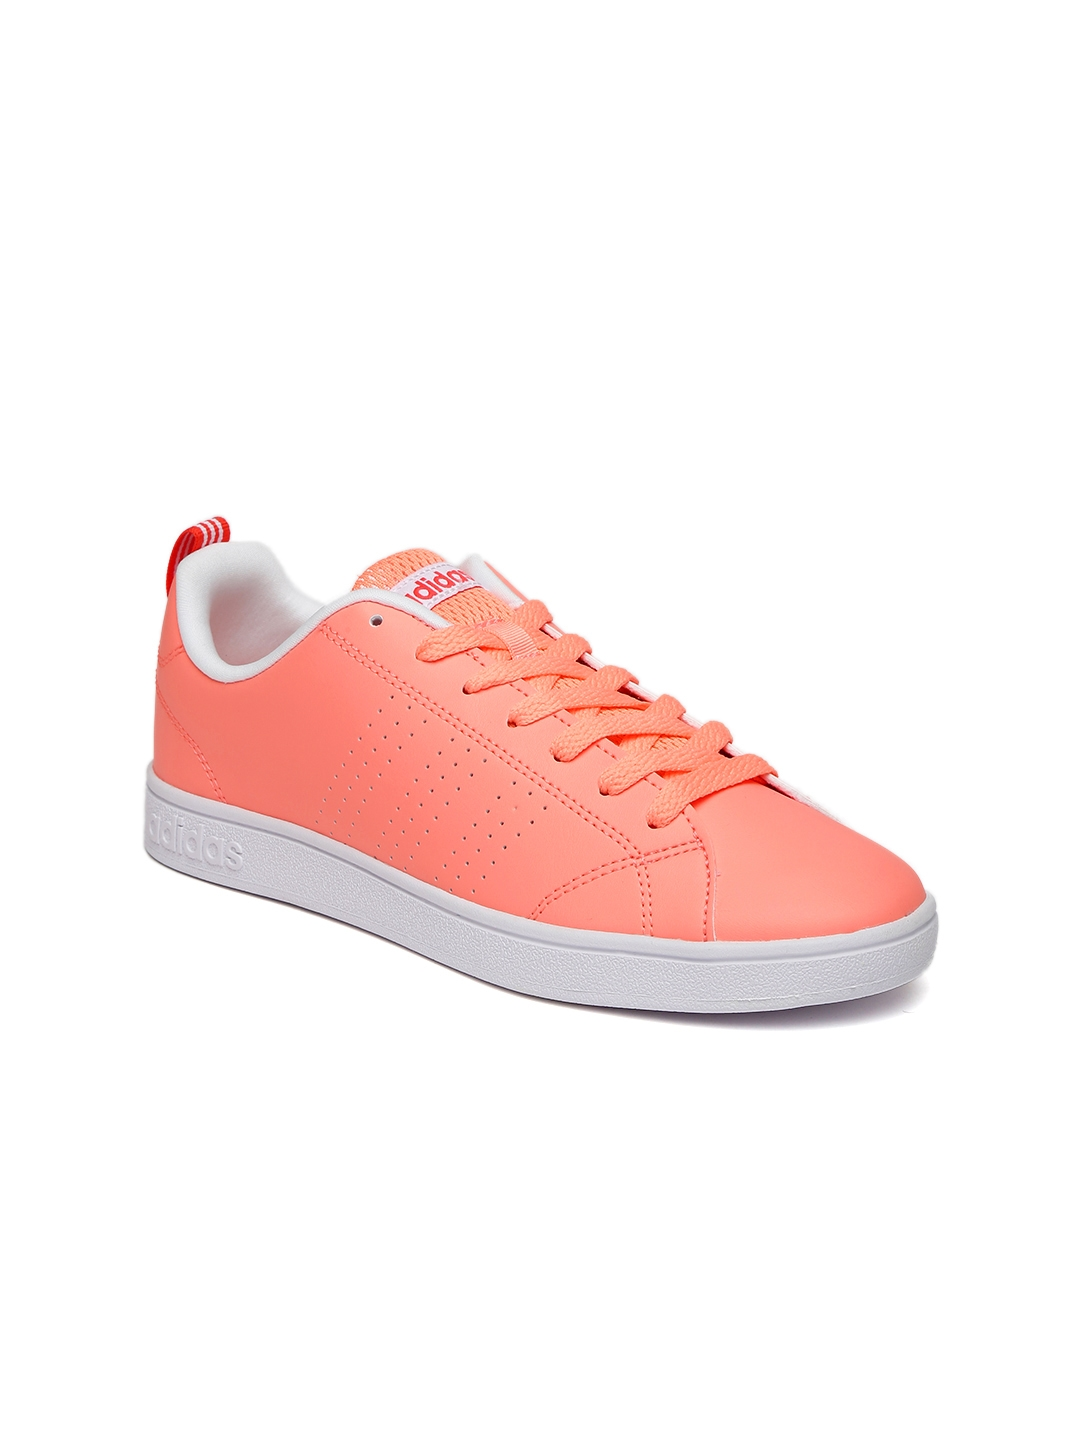 Pink Red Adidas Skate Shoes